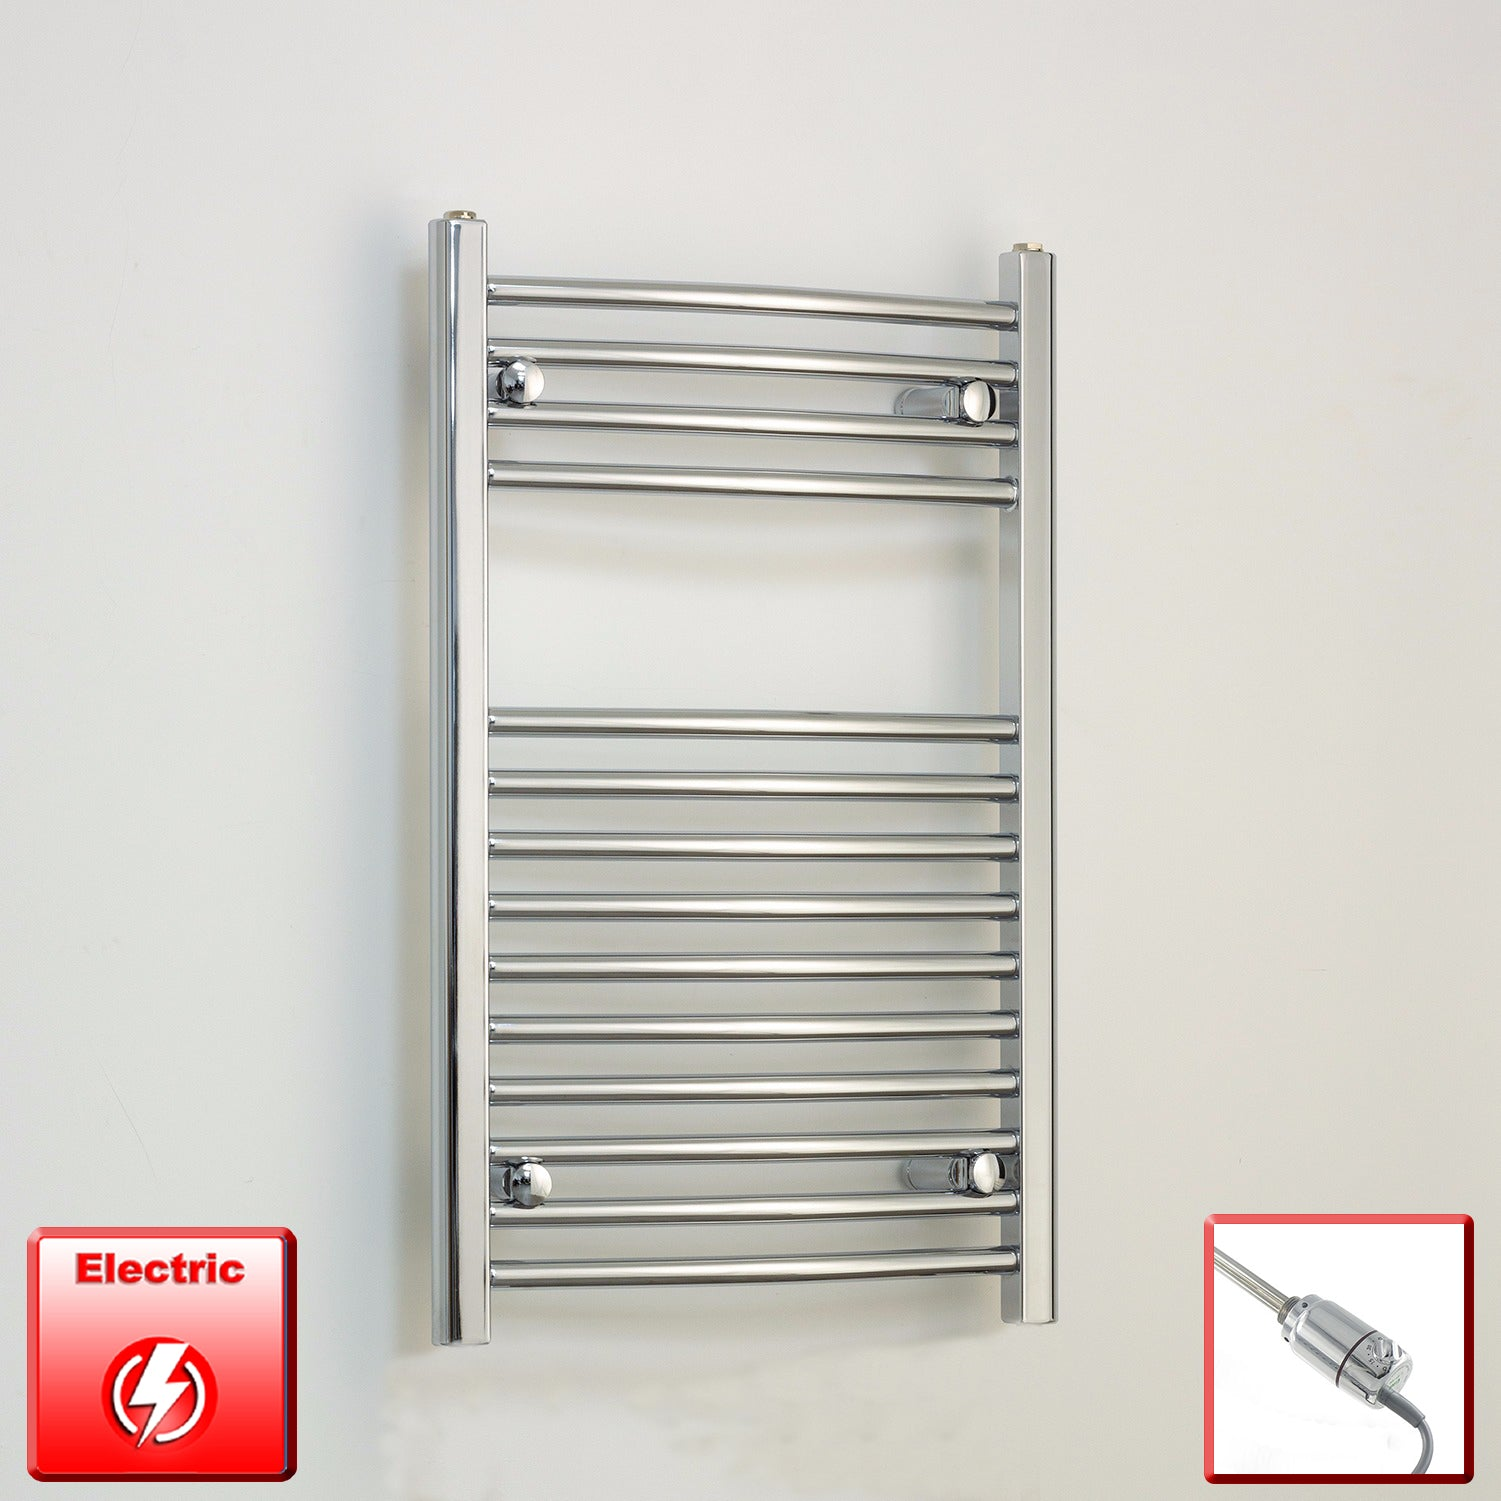 500mm Wide 800mm High Pre-Filled Chrome Electric Towel Rail Radiator With Thermostatic GT Element